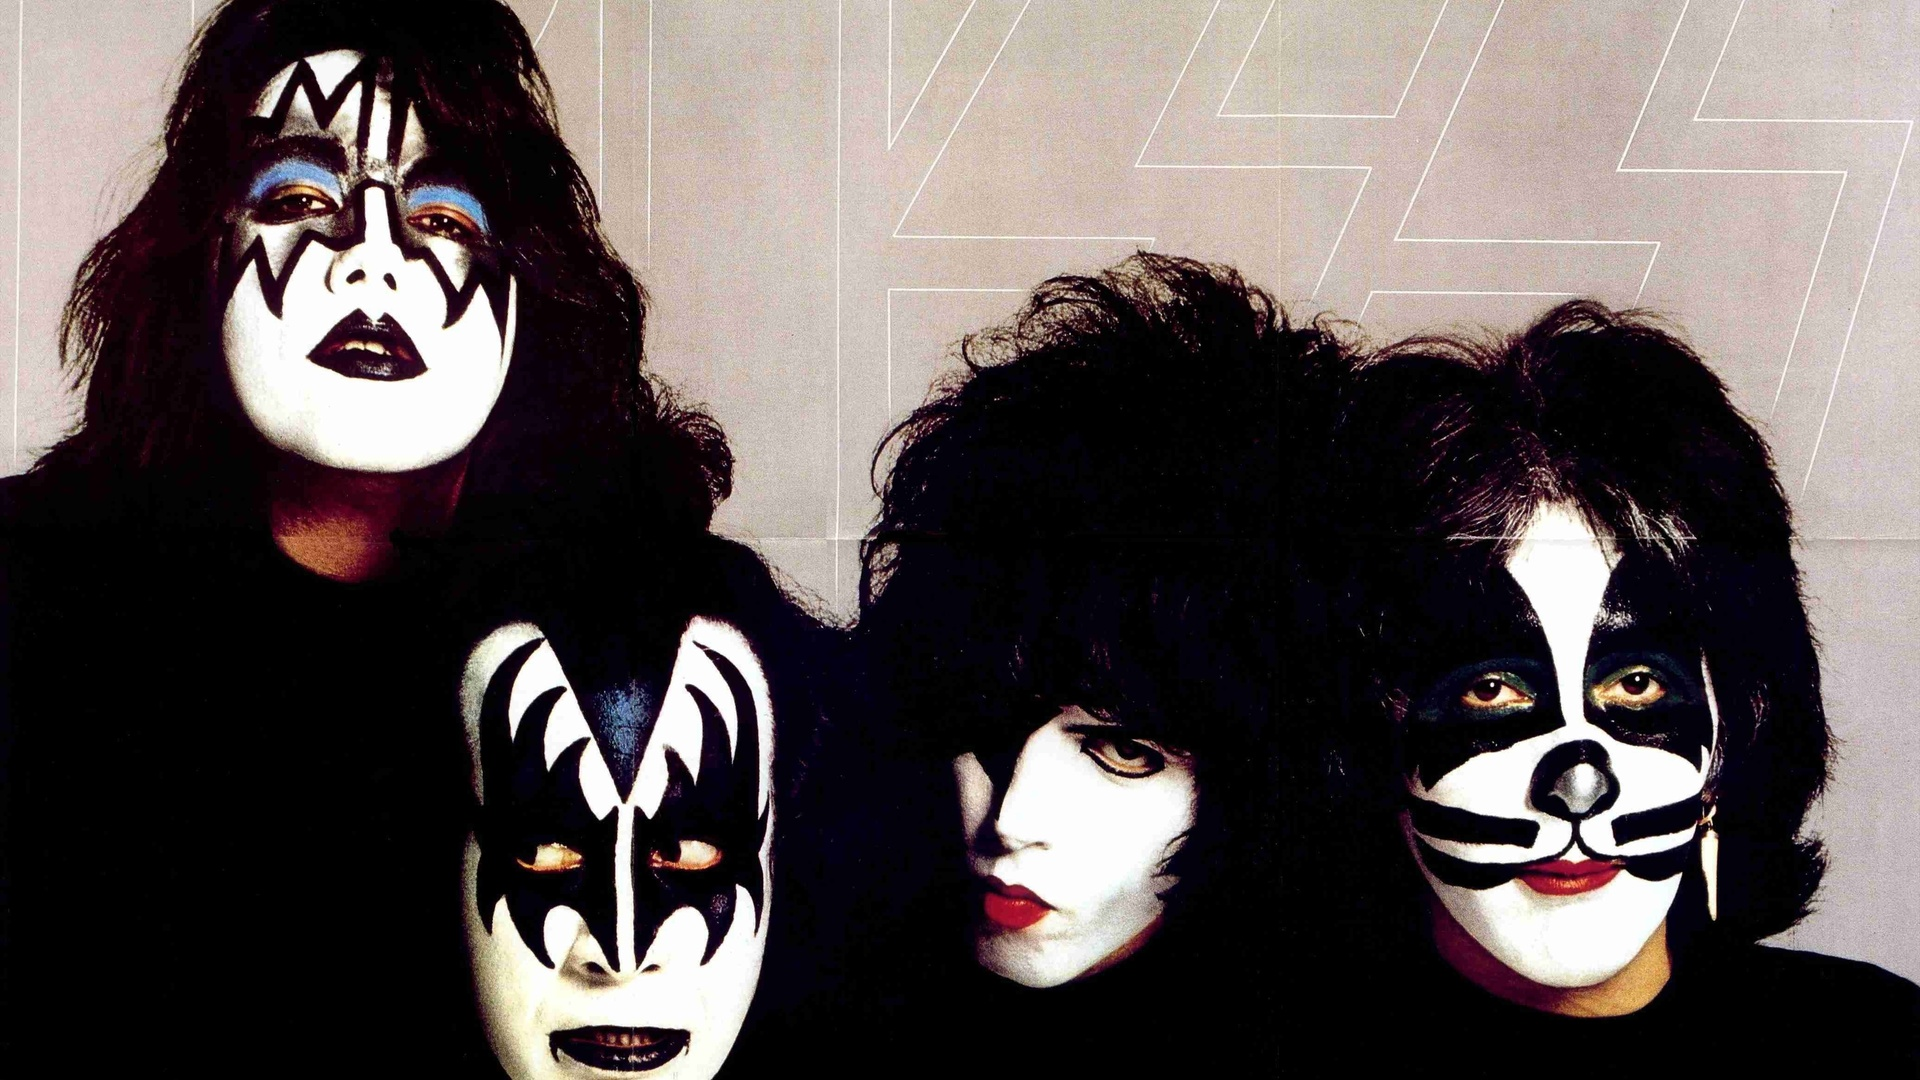 facebook-hard-rock-profile-pictures-Kiss-heavy-metal-rock-bands-j-1920x1080-wallpaper-wp3605456